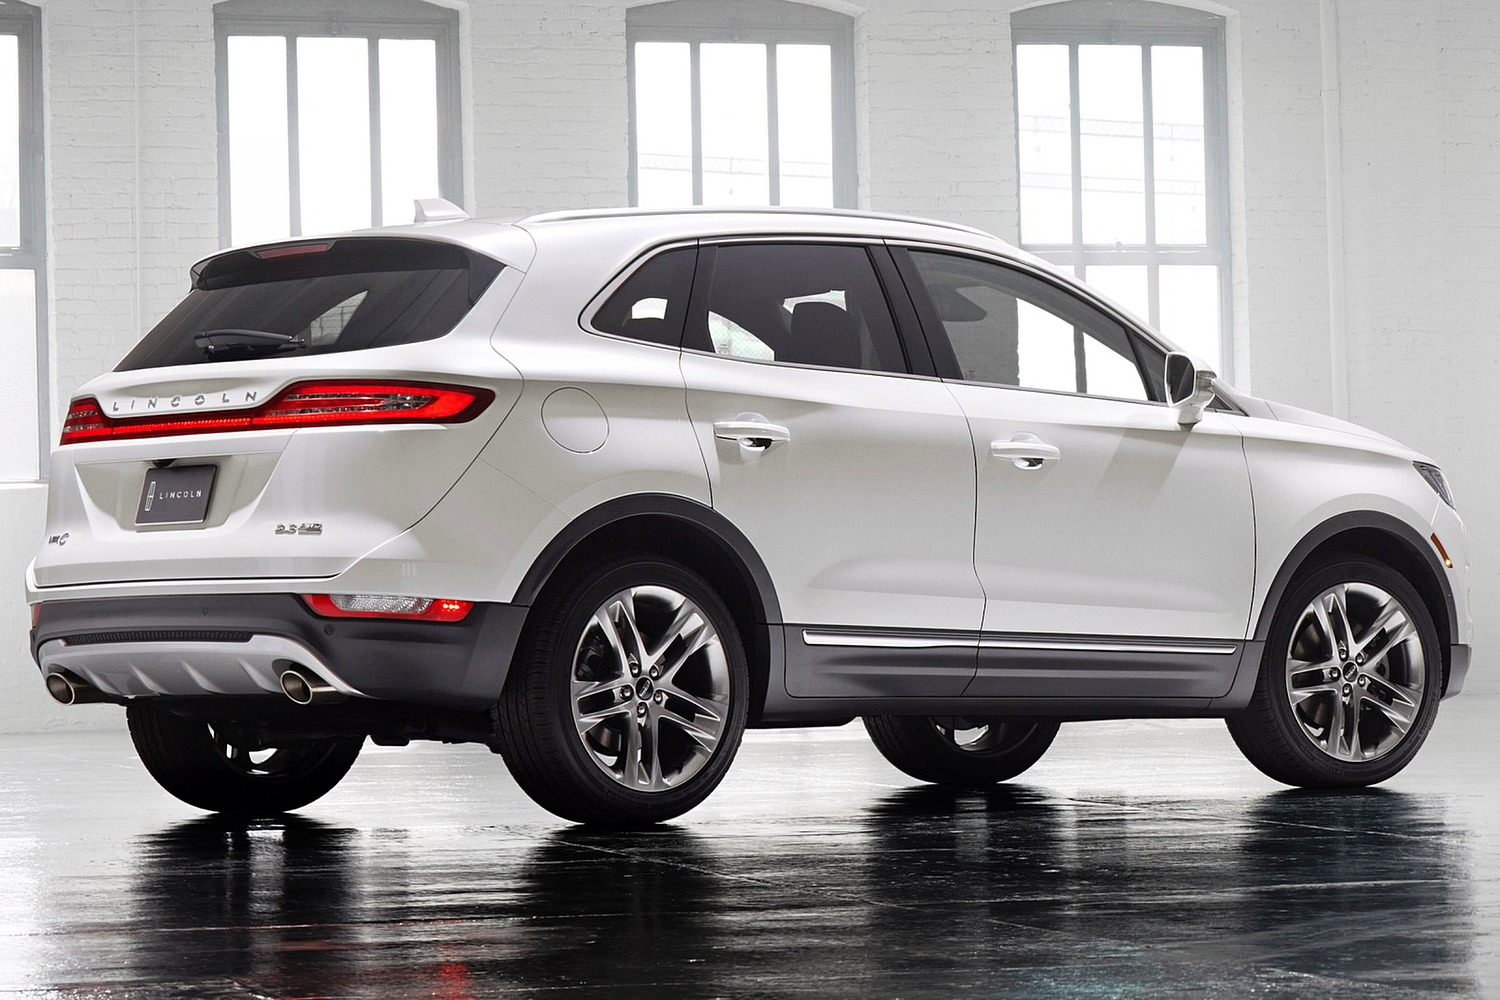 Lincoln MKC Select 4dr SUV Exterior. Options Shown. (2016 model year shown)